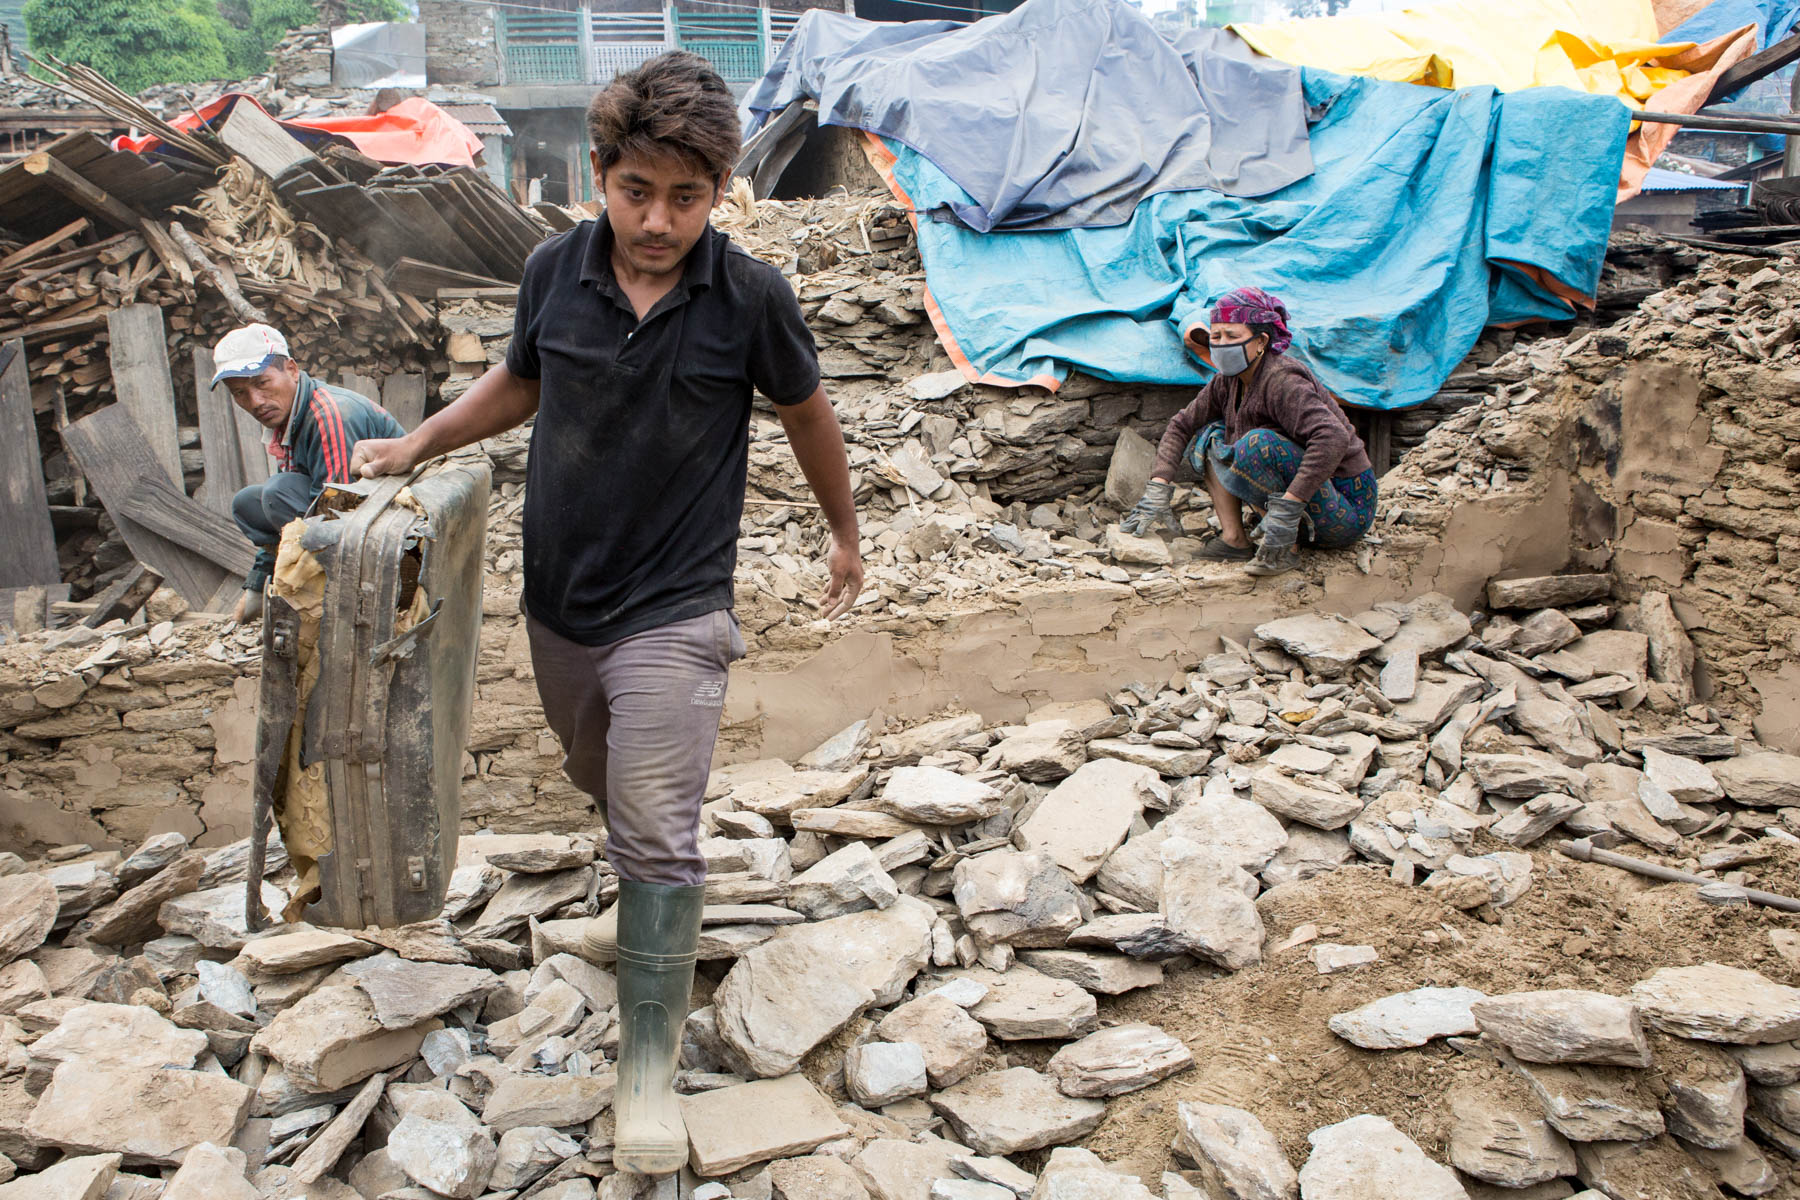 The people of Barpak sort through the rubble of what once was their home after the April 25th earthquake devastated the area.